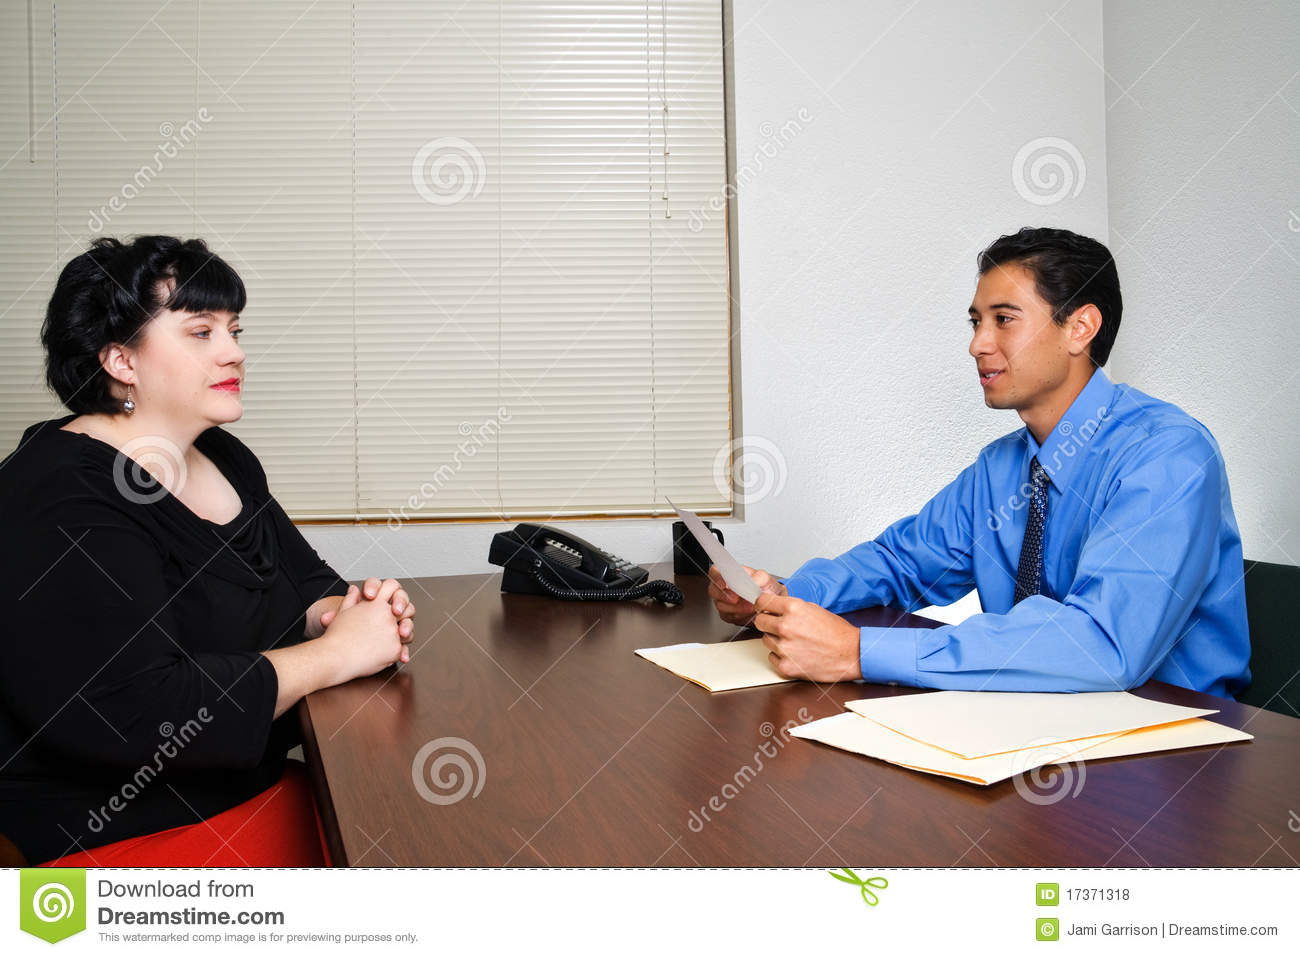 job interview royalty free stock photos image 17371318